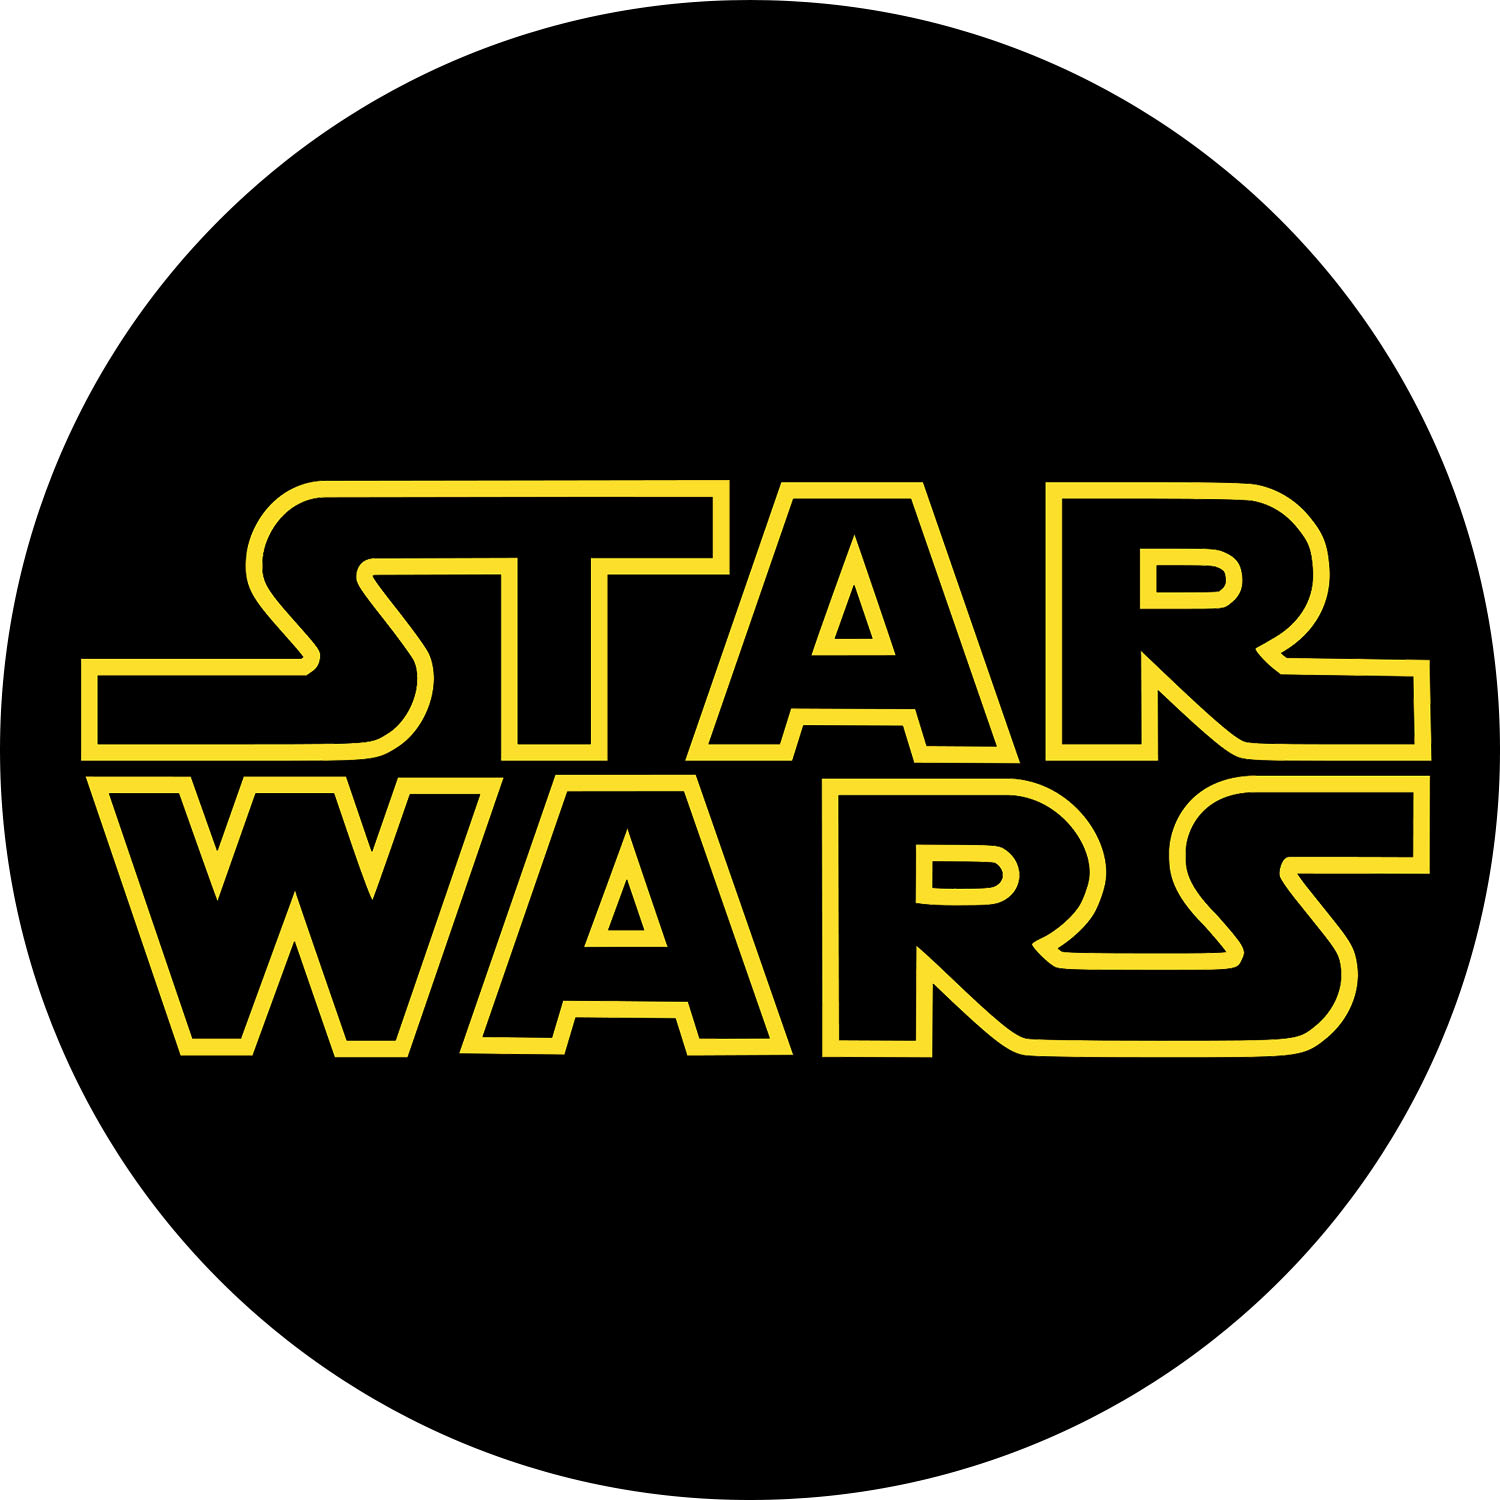 image regarding Printable Star Wars Images known as Star Wars Infants: Totally free Printable Toppers and Wrappers for